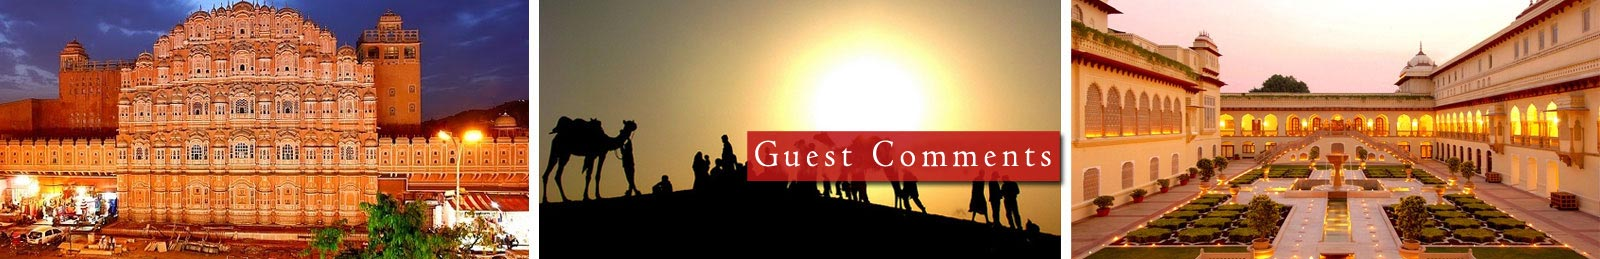 Rajasthan Guest Comments